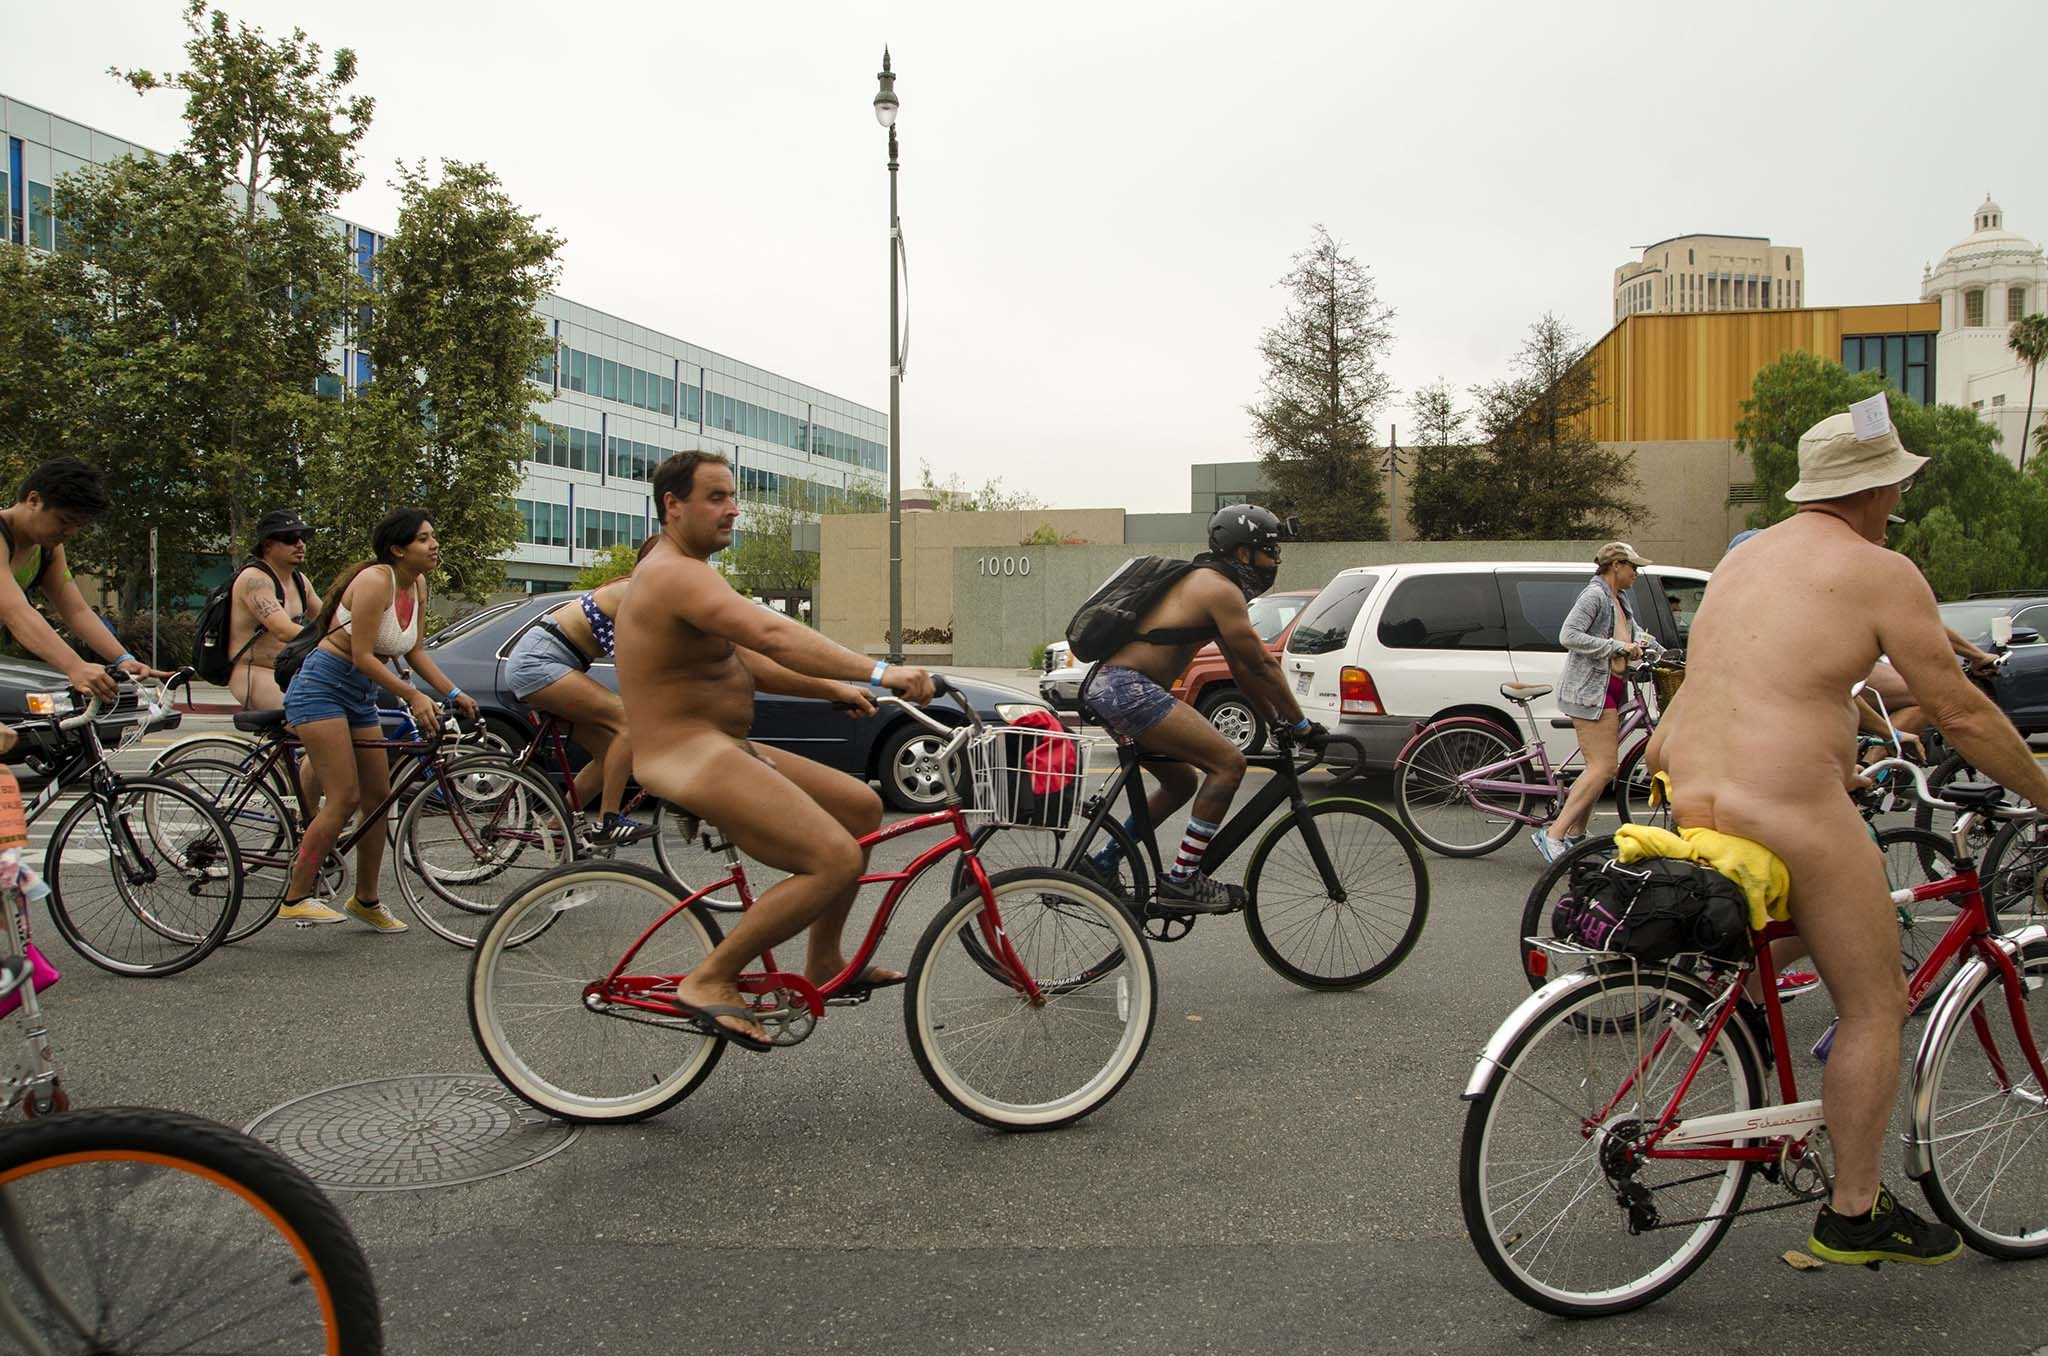 World Naked Bike Ride 2015